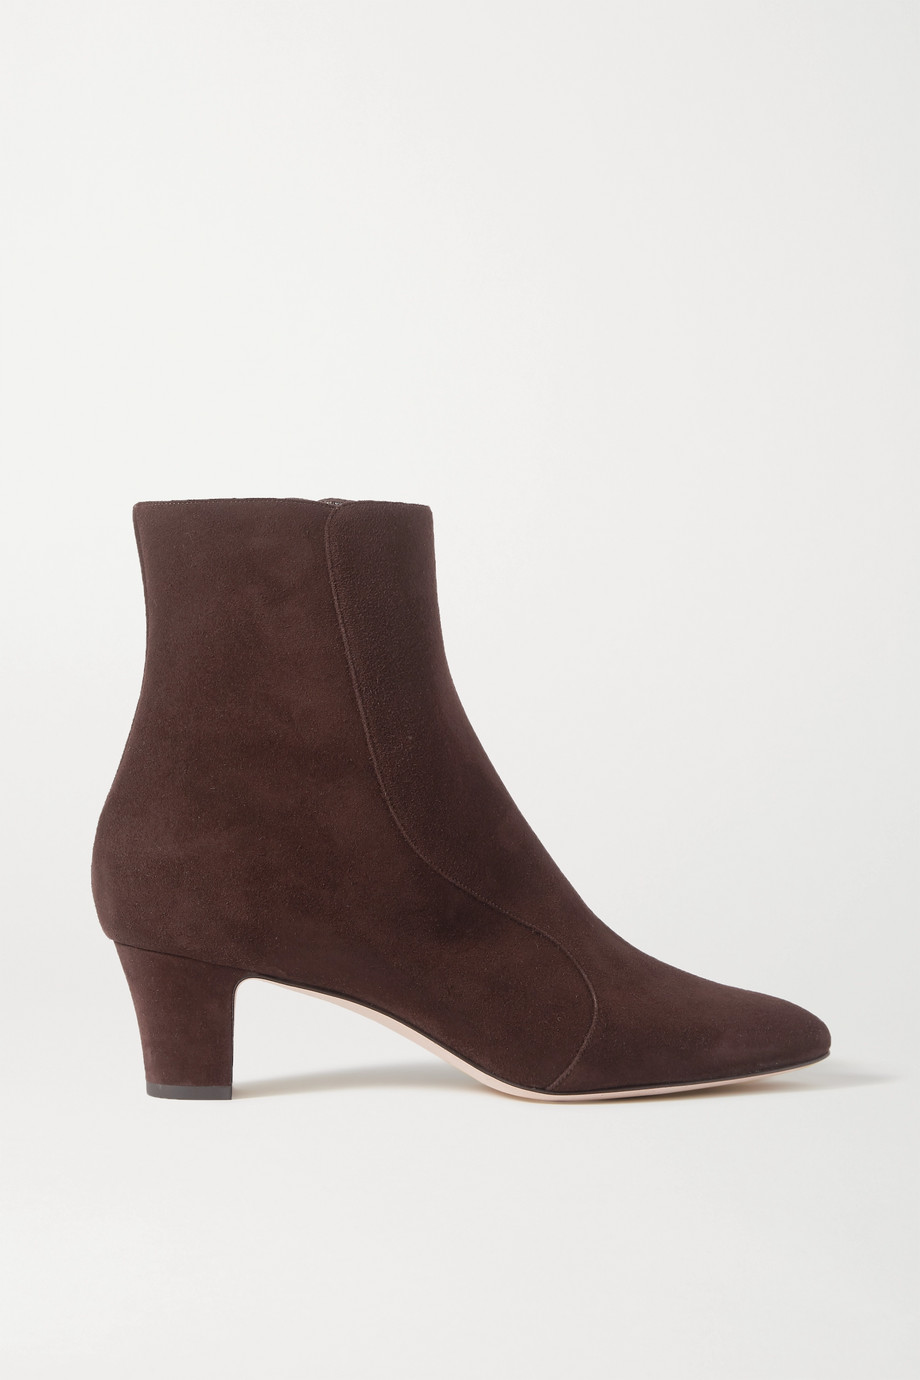 Manolo Blahnik Myconia suede ankle boots